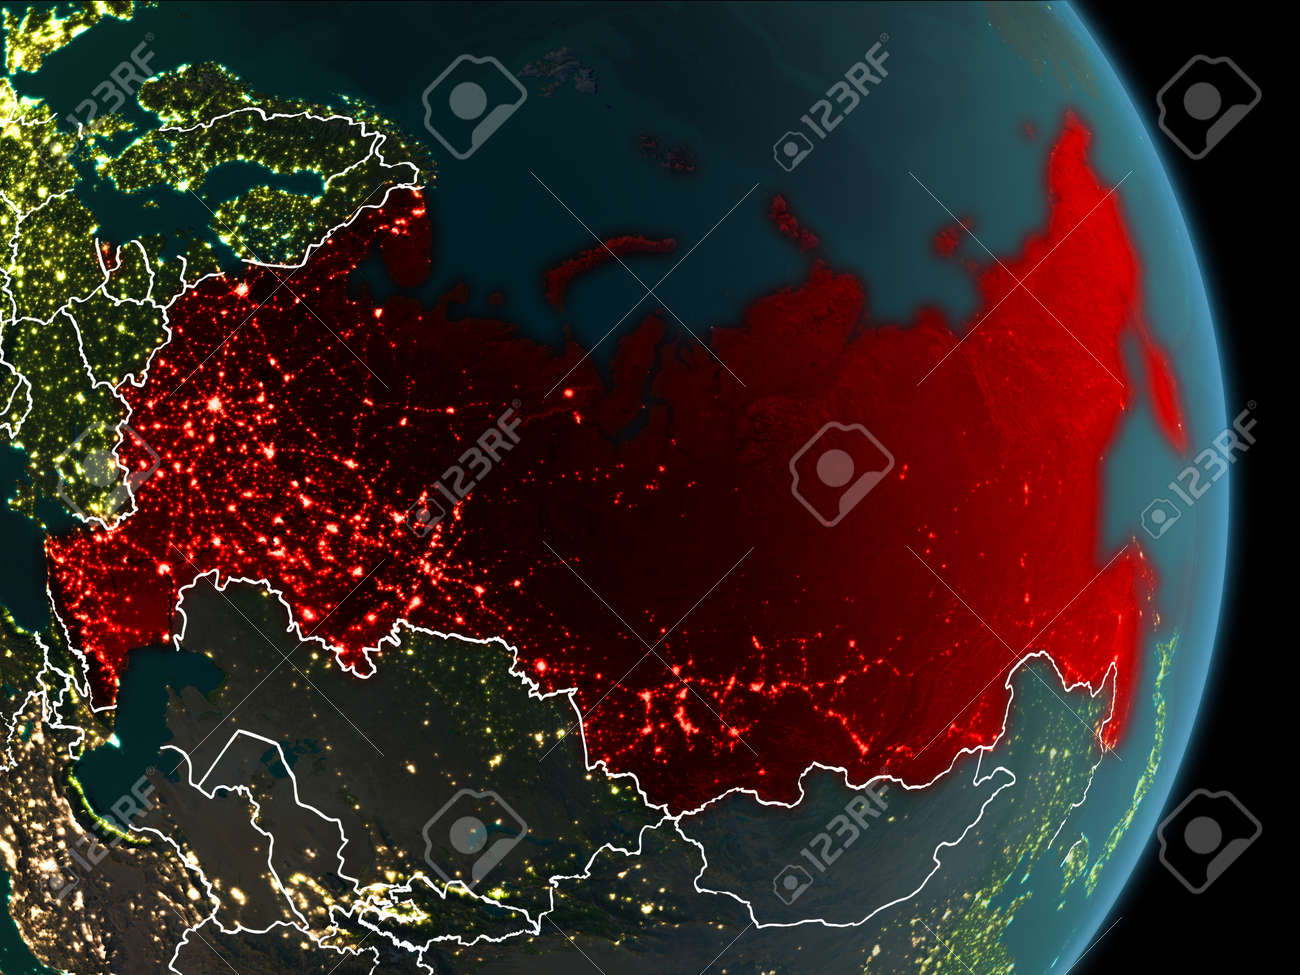 Map of russia in red as seen from space on planet earth at night illustration map of russia in red as seen from space on planet earth at night with white borderlines and city lights 3d illustration gumiabroncs Image collections